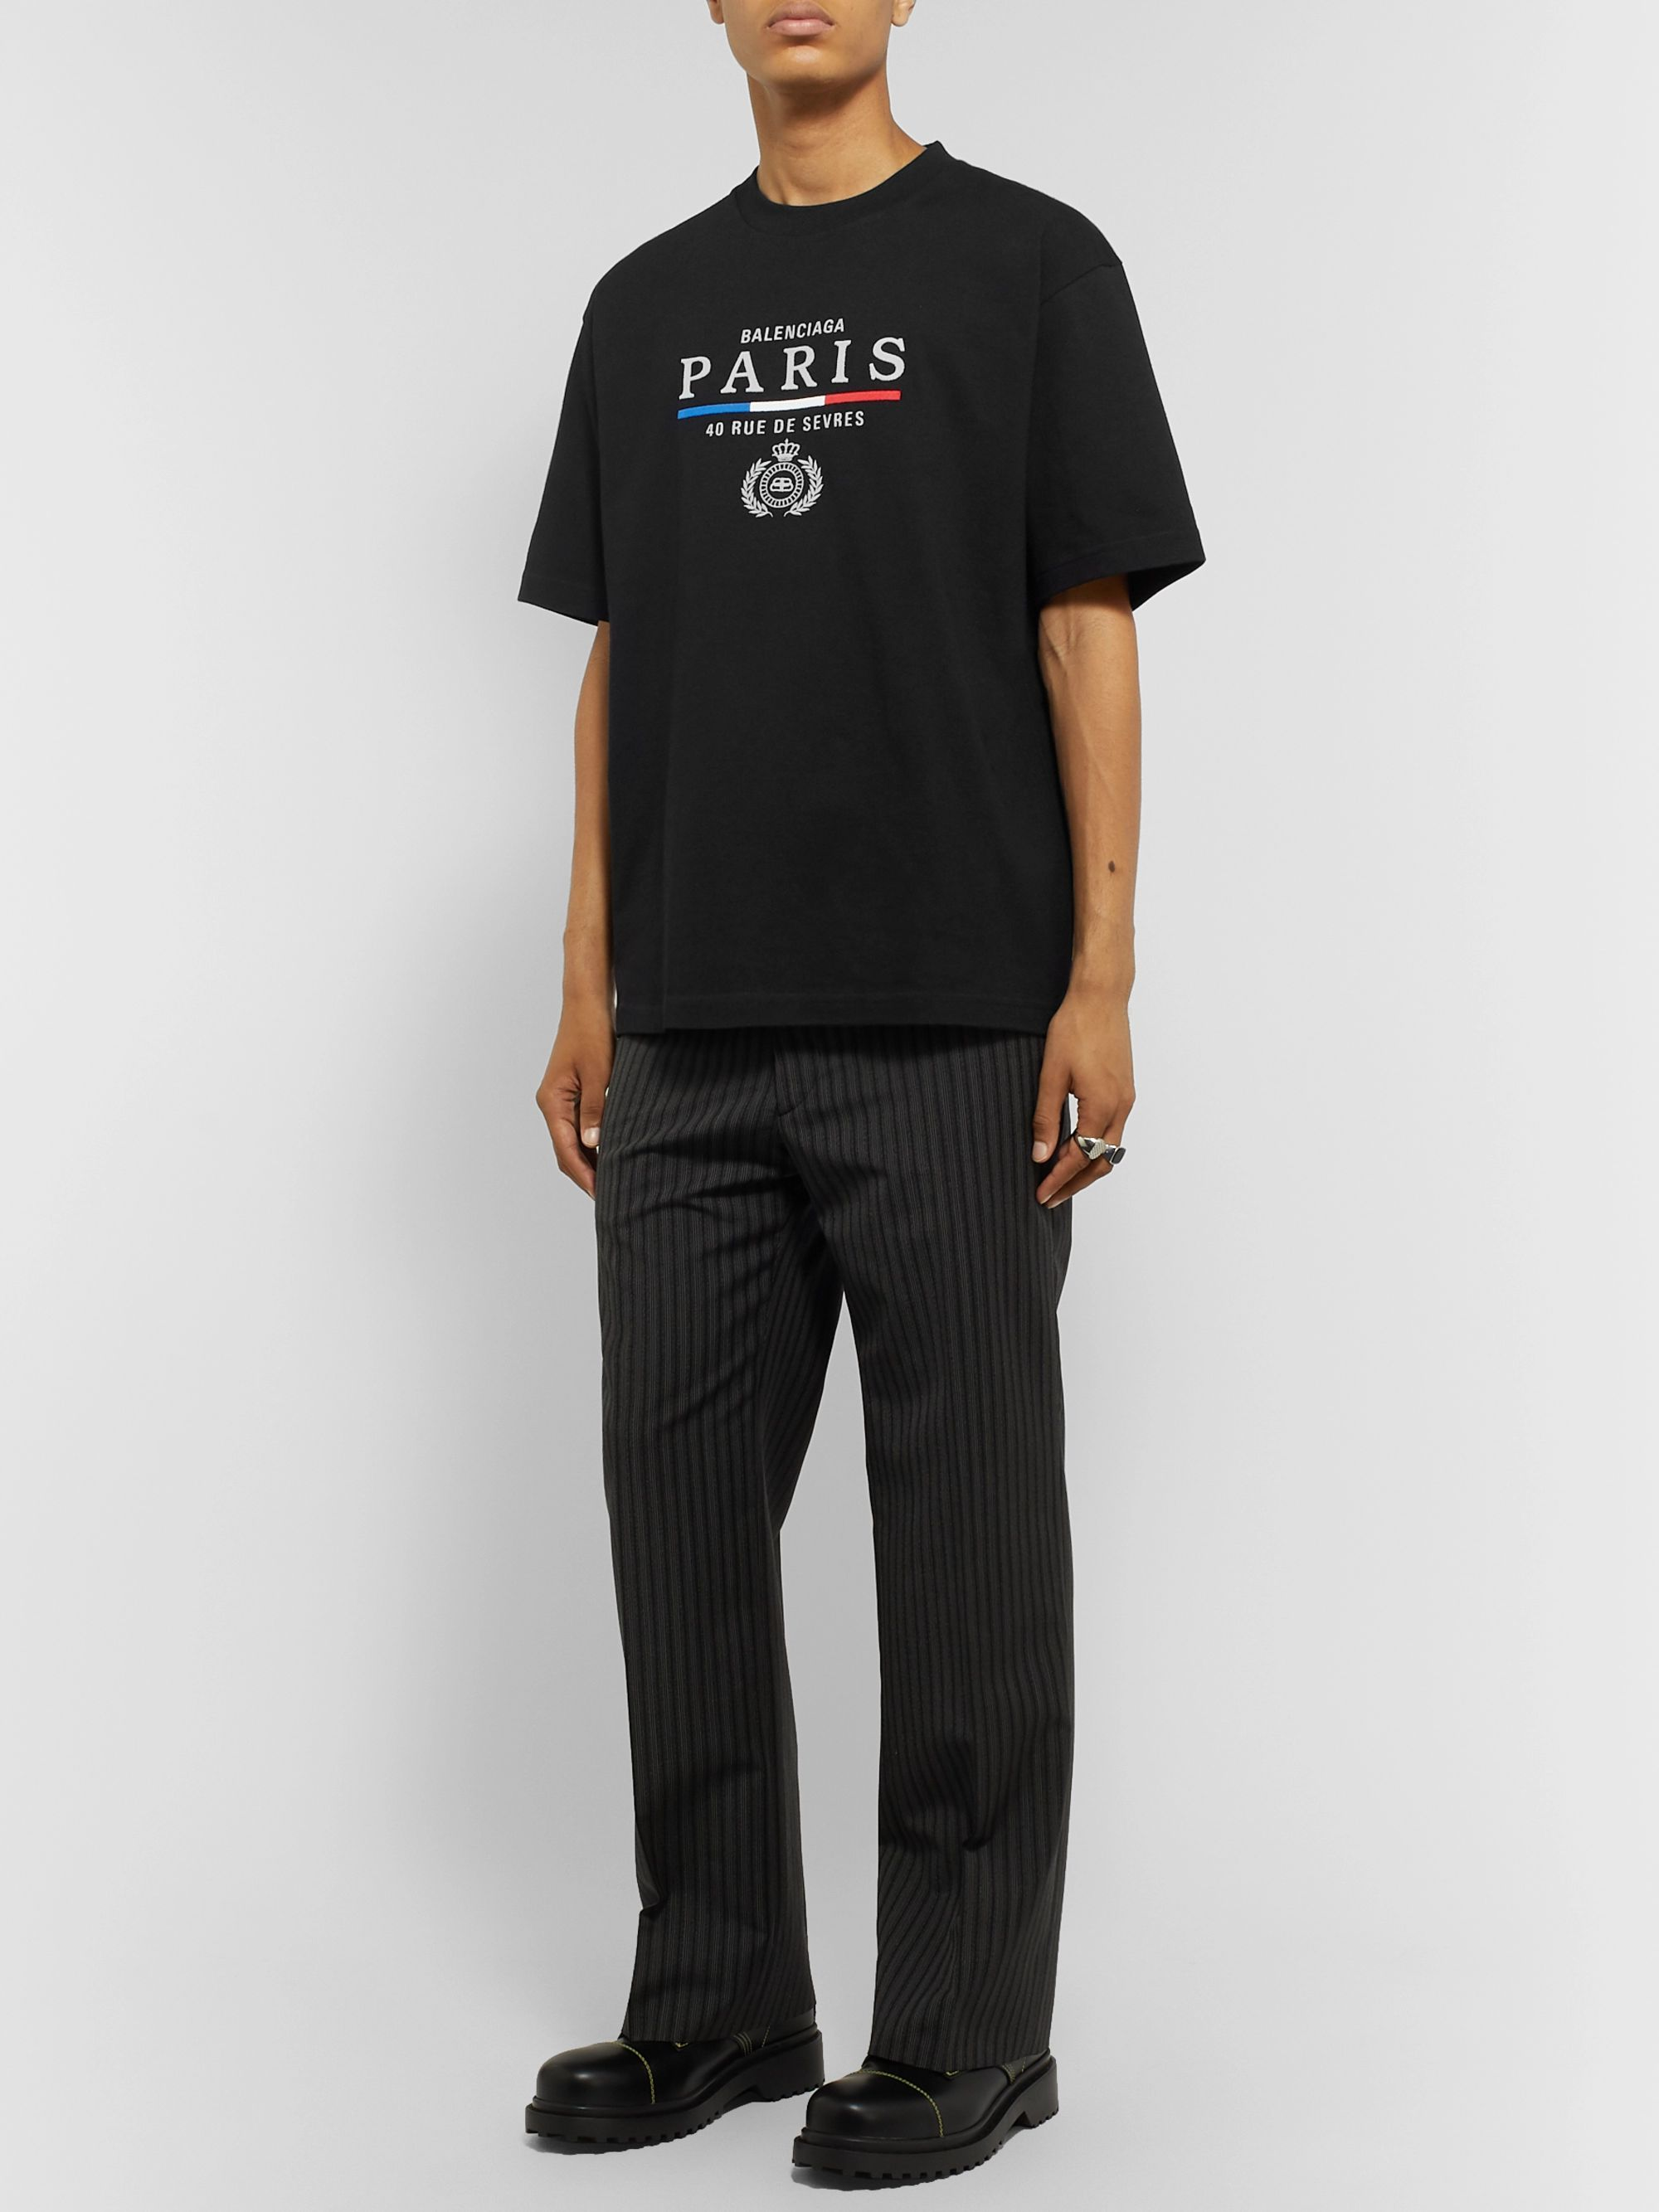 Balenciaga Embroidered Cotton-Jersey T-Shirt